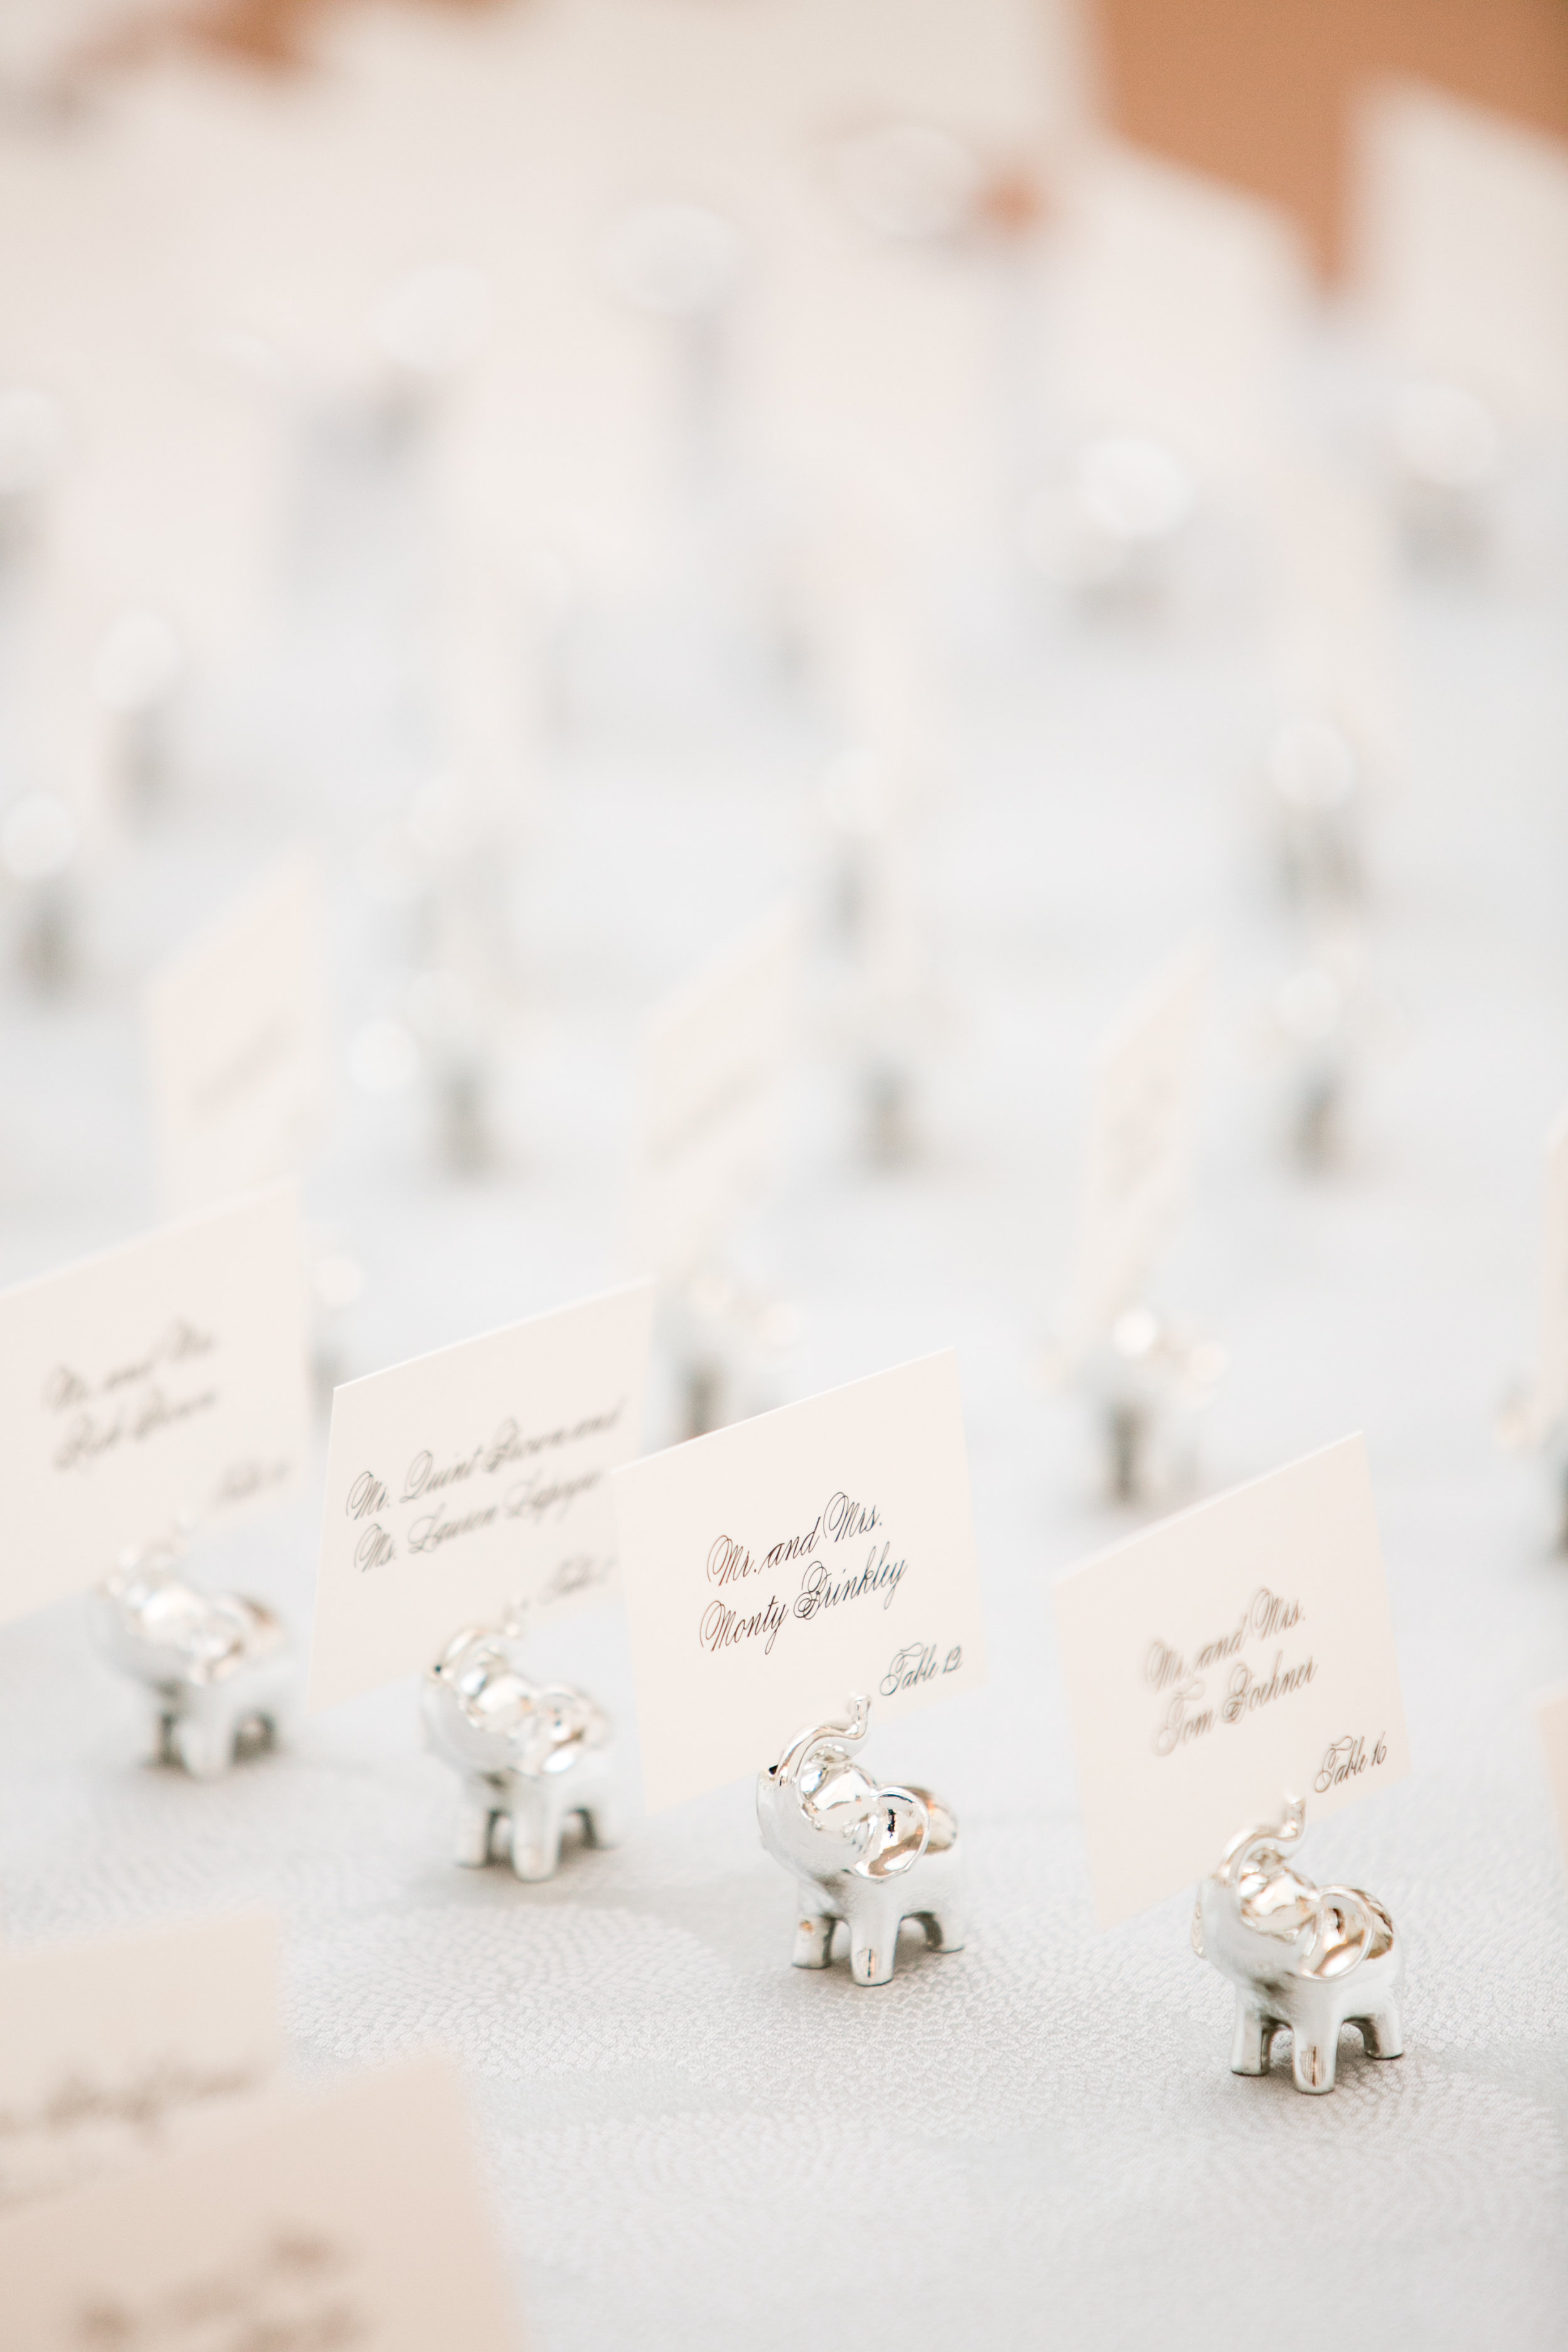 Stationary Details - Dallas, Tx - Fall Wedding - Julian Leaver Events